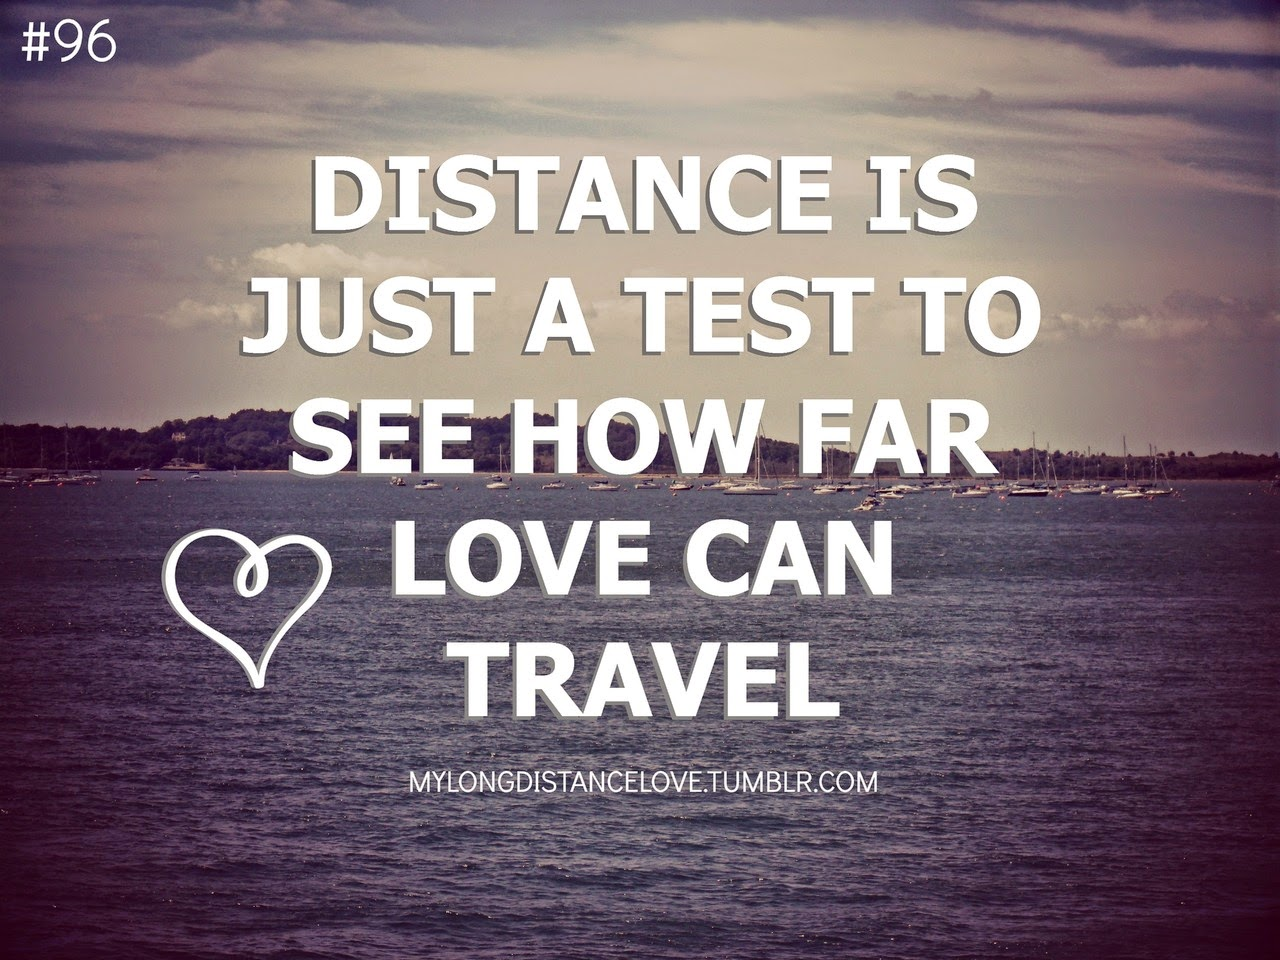 I Love You Quotes Long Distance : Thus long distance relationship quotes for her and for him